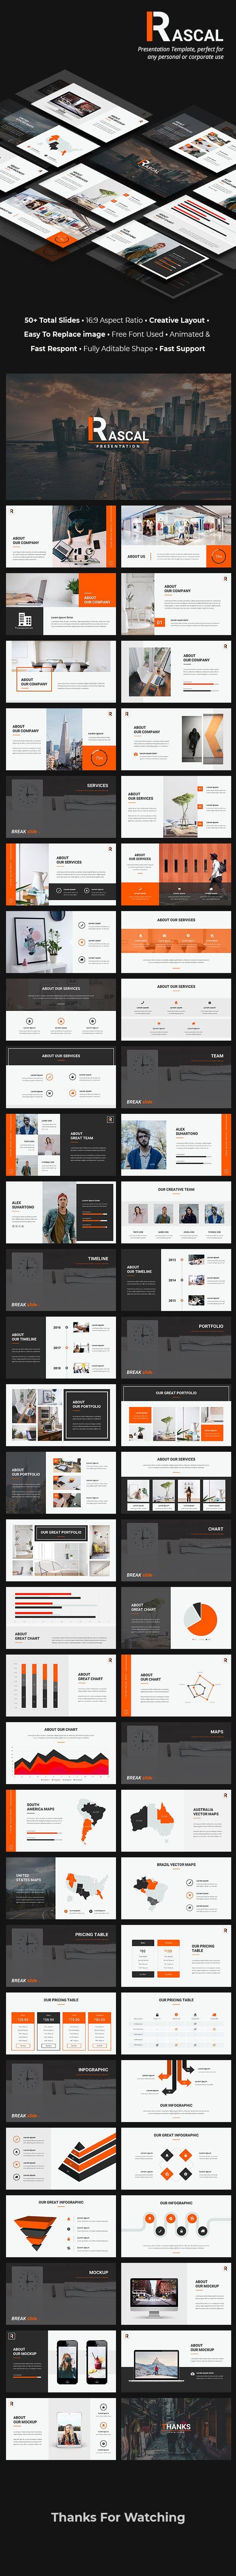 rascal creative powerpoint template 50 total slides animated